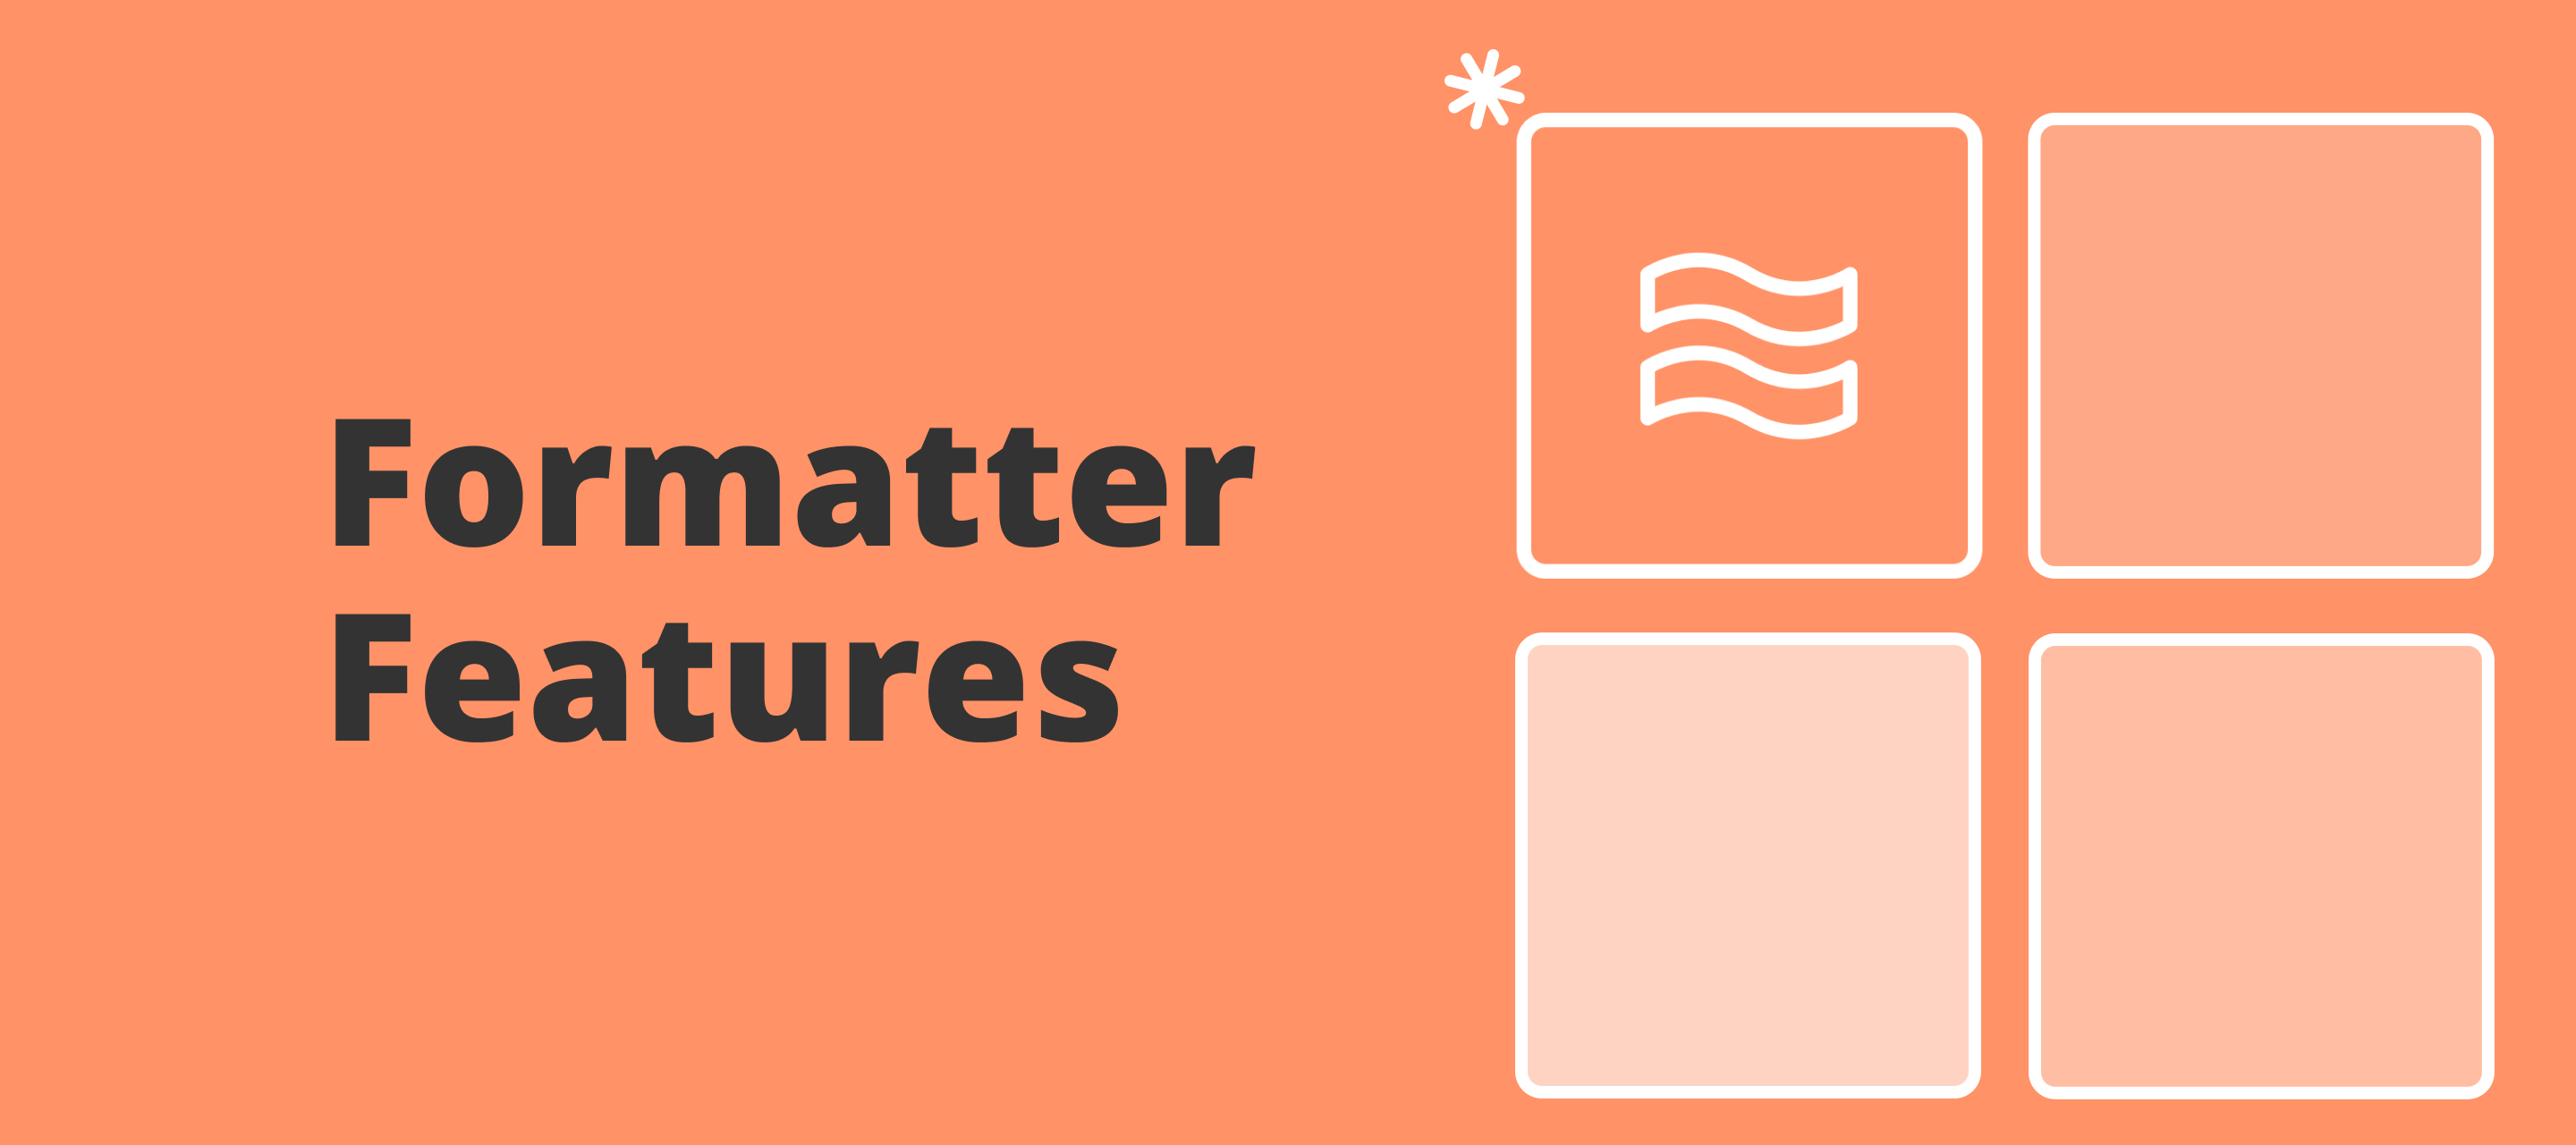 Introducing our Formatter Features article series